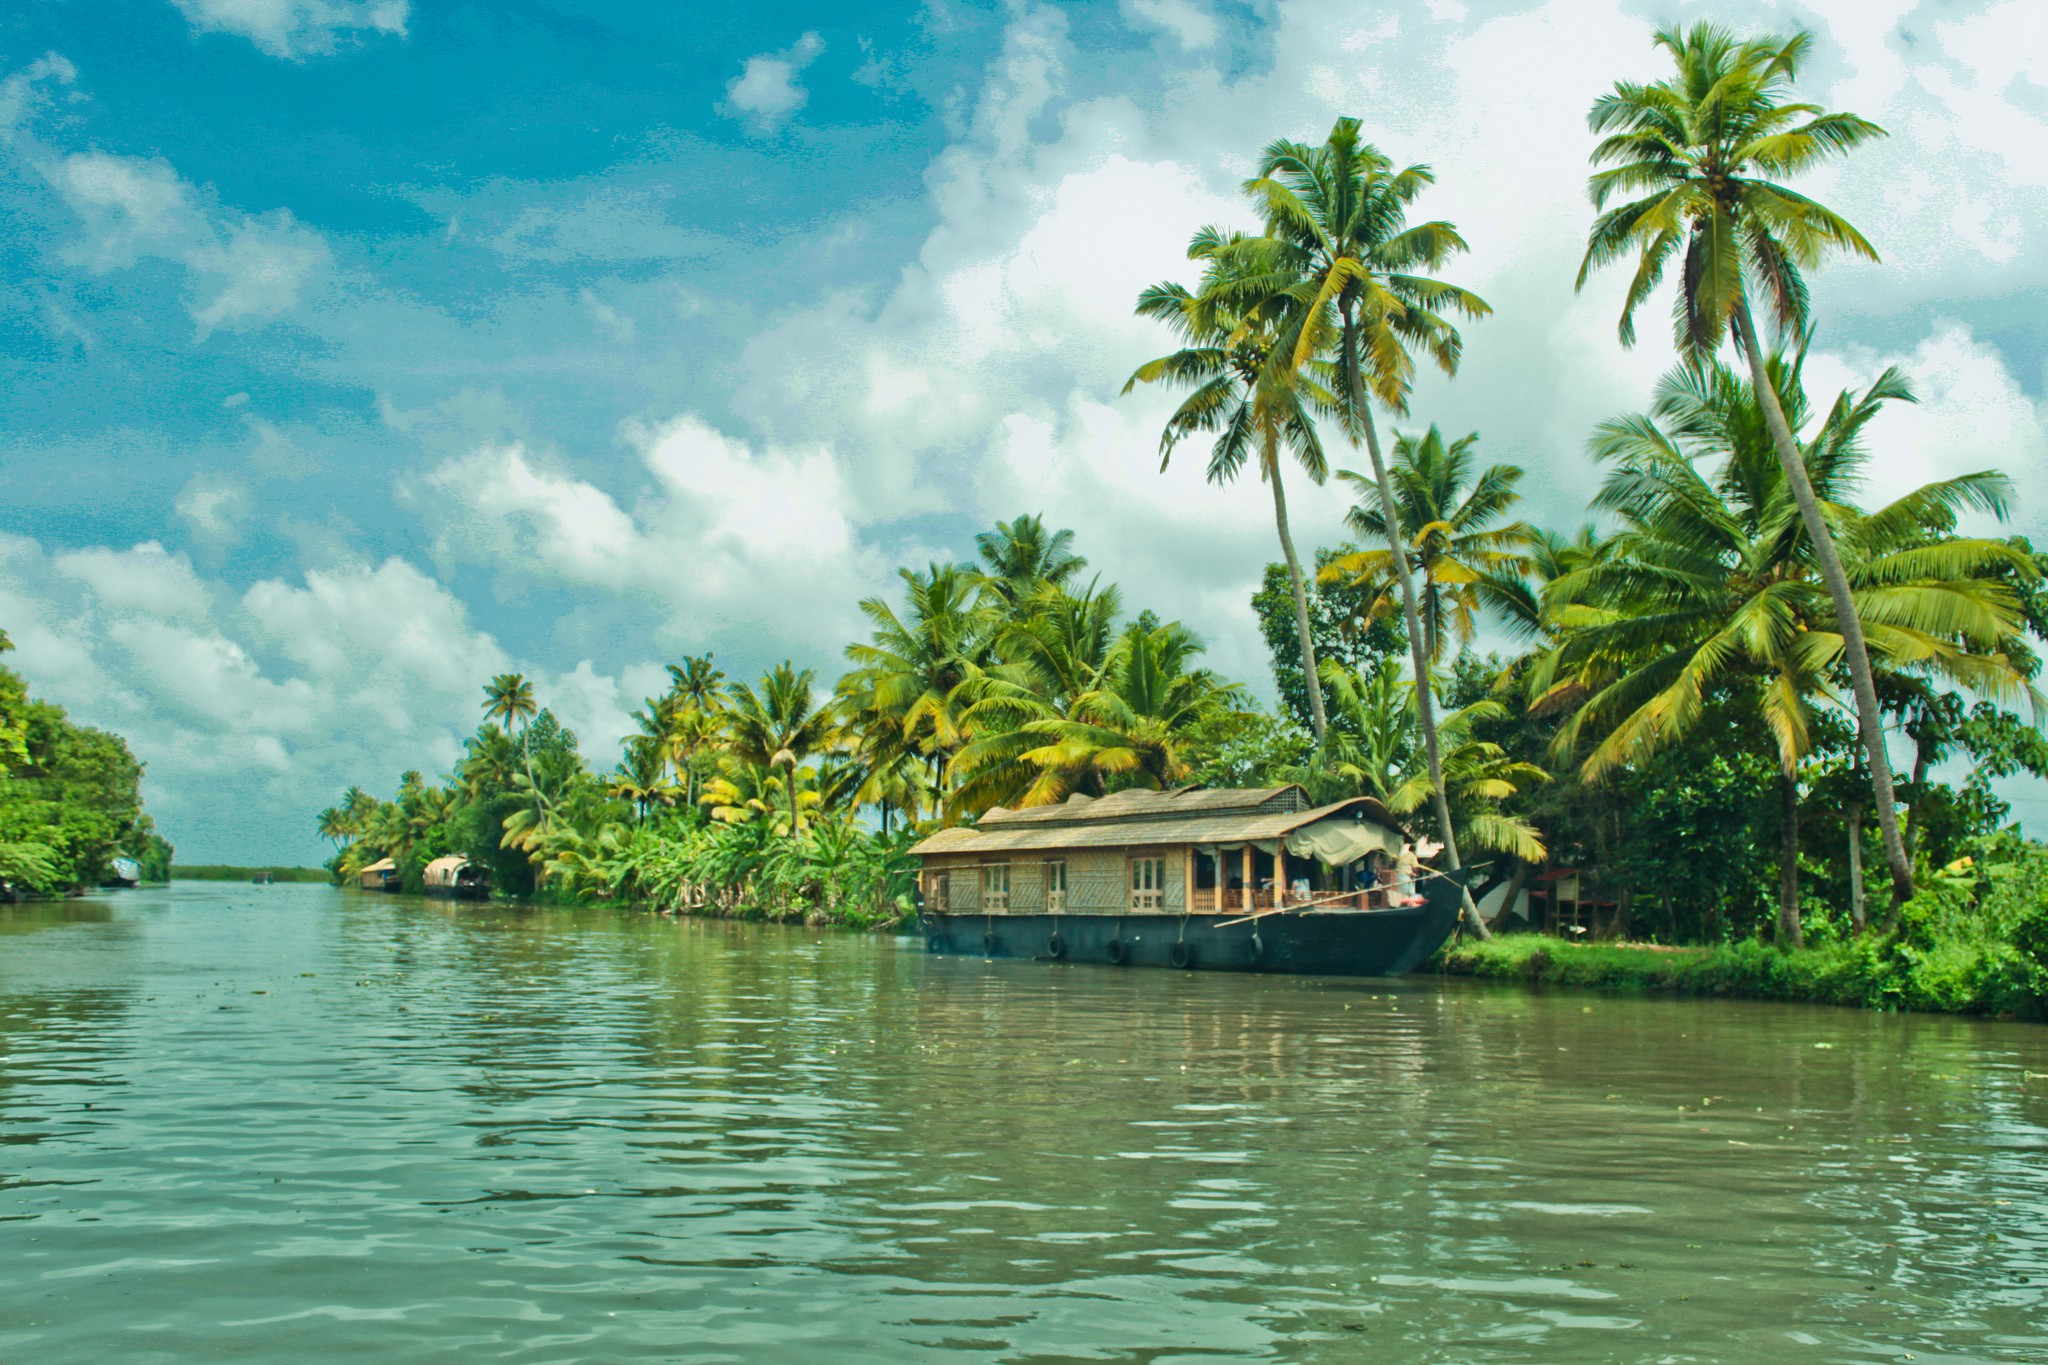 Best of Kerala Image